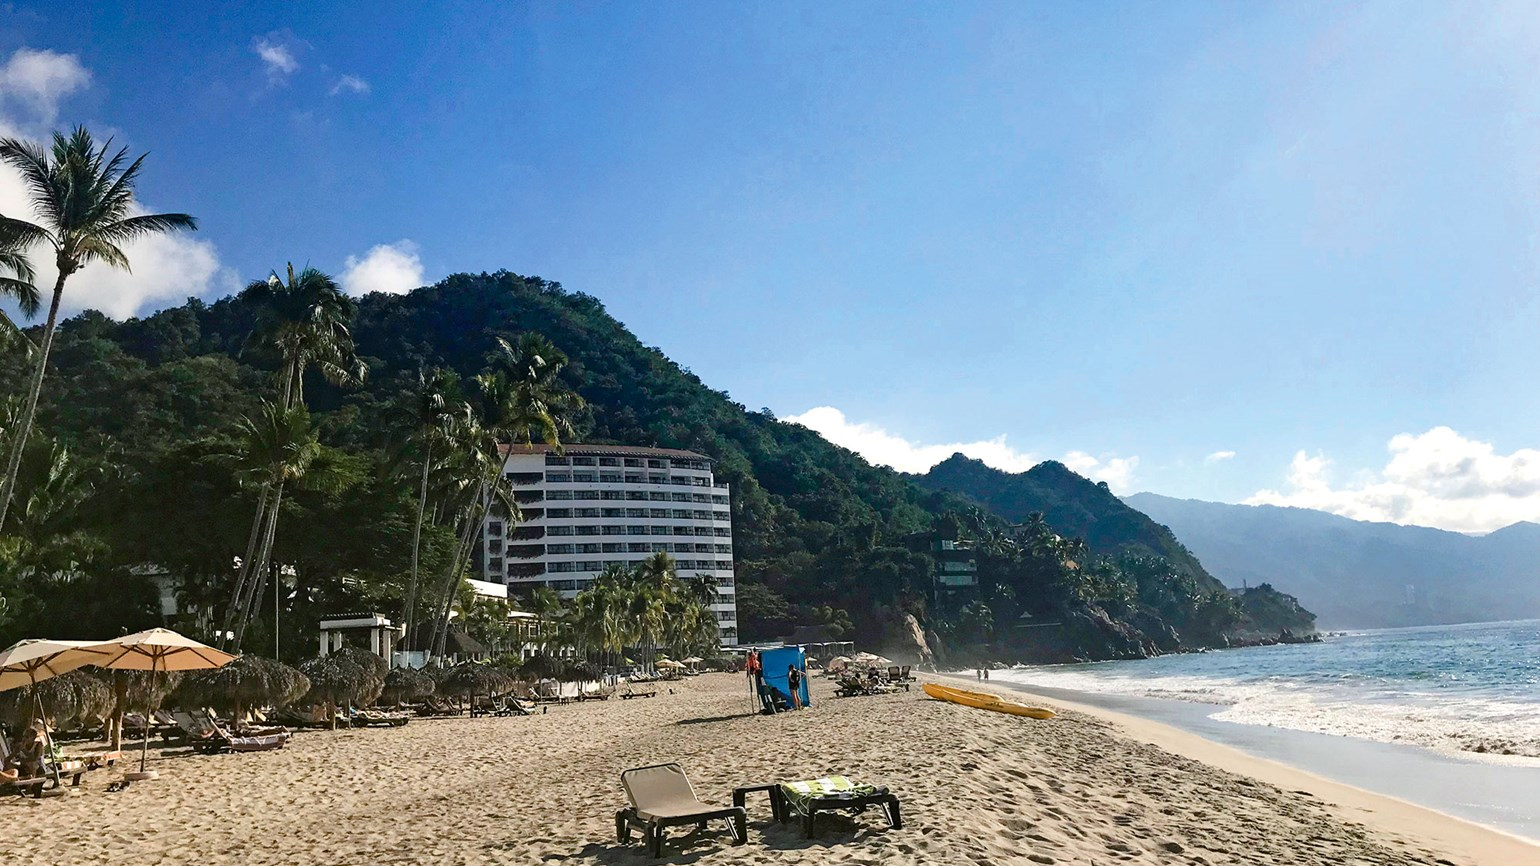 Renovated Puerto Vallarta icon hits the mark for new luxury